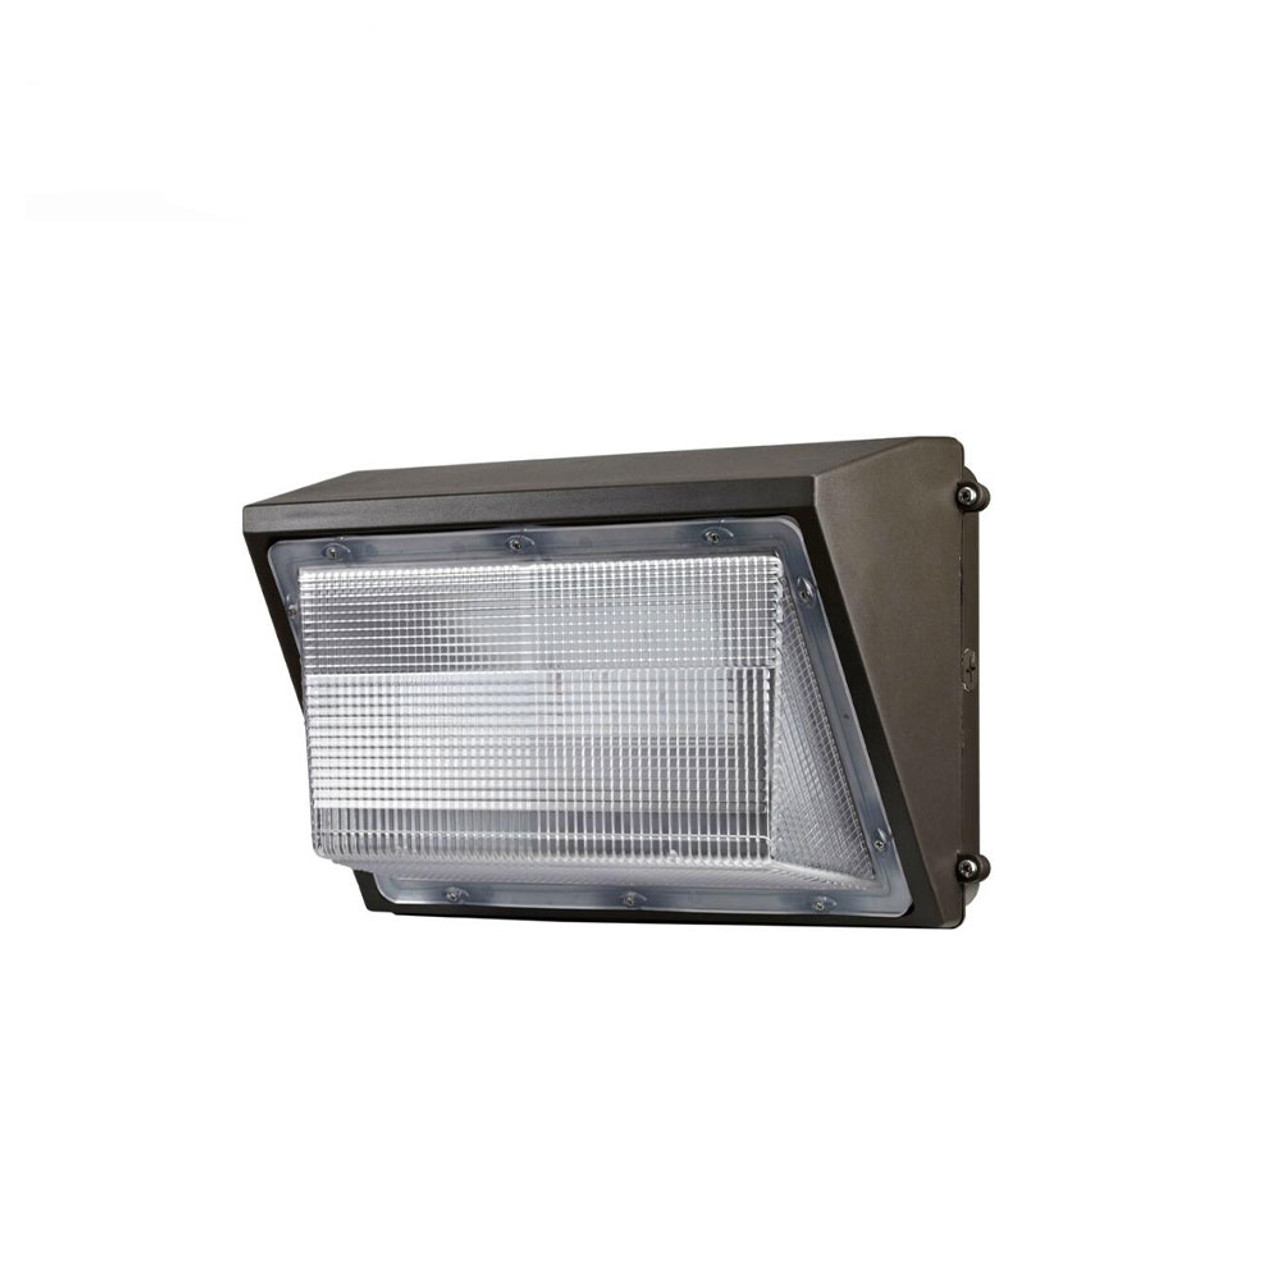 Led wall pack 65 watt 7300 lumen 5000 kelvin 100 277 volt ul dlc listed